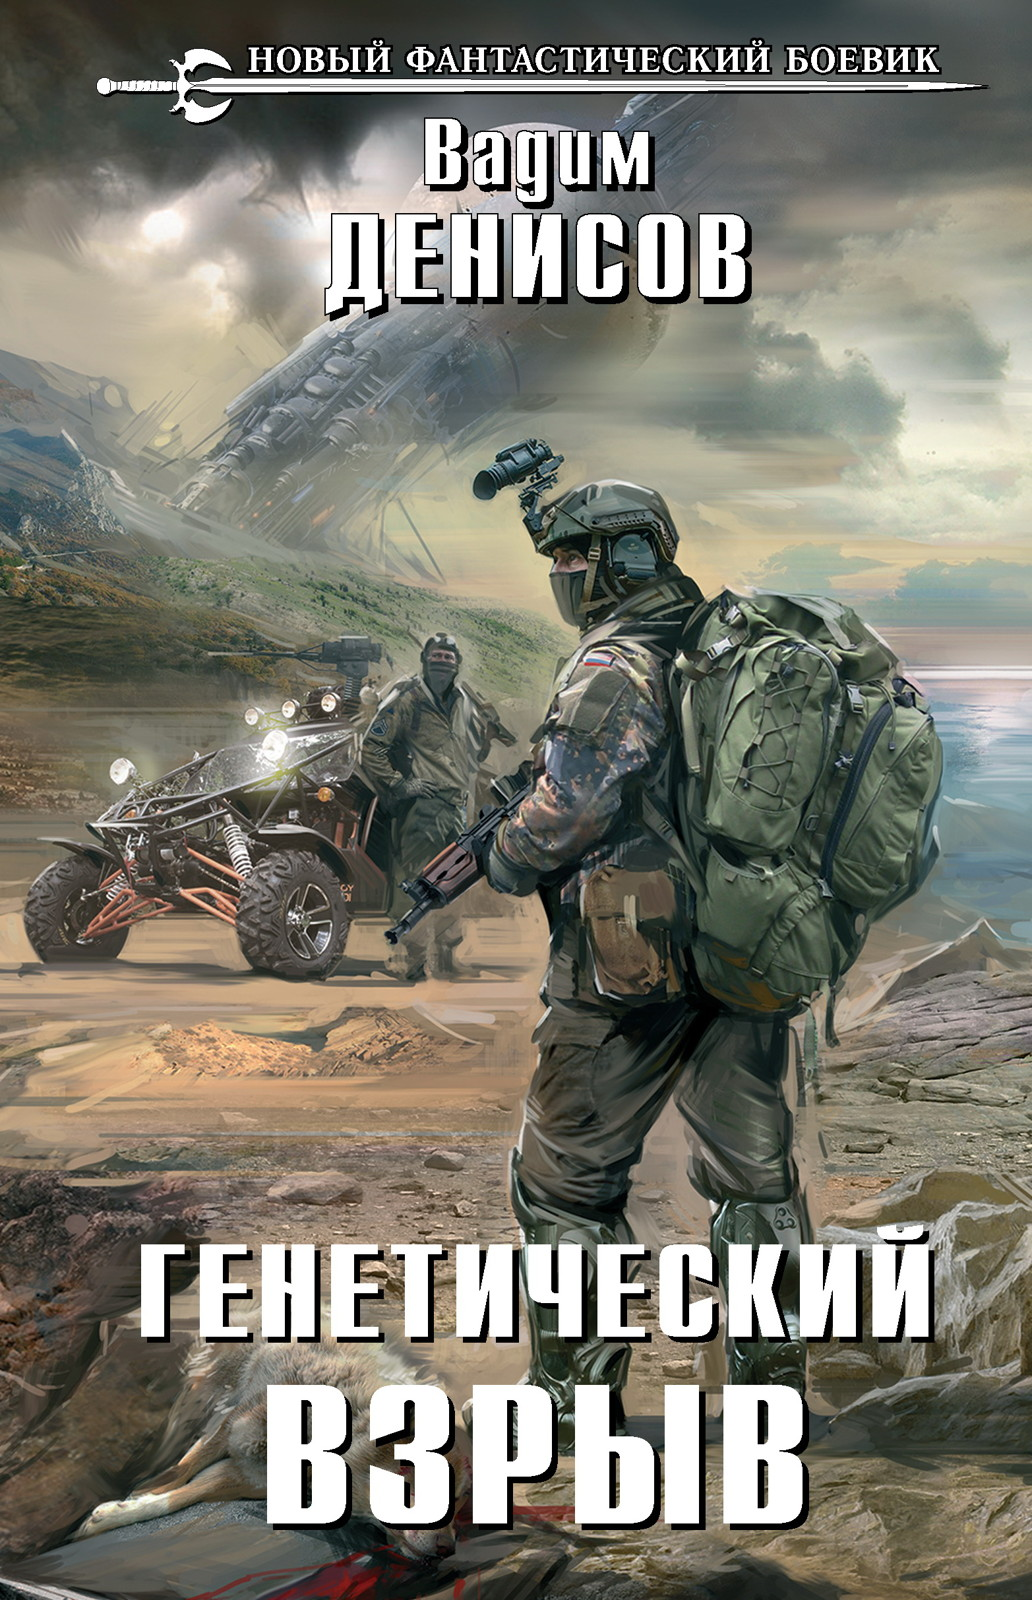 Denisov - Genetic explosion (fb2, mobi, epub)